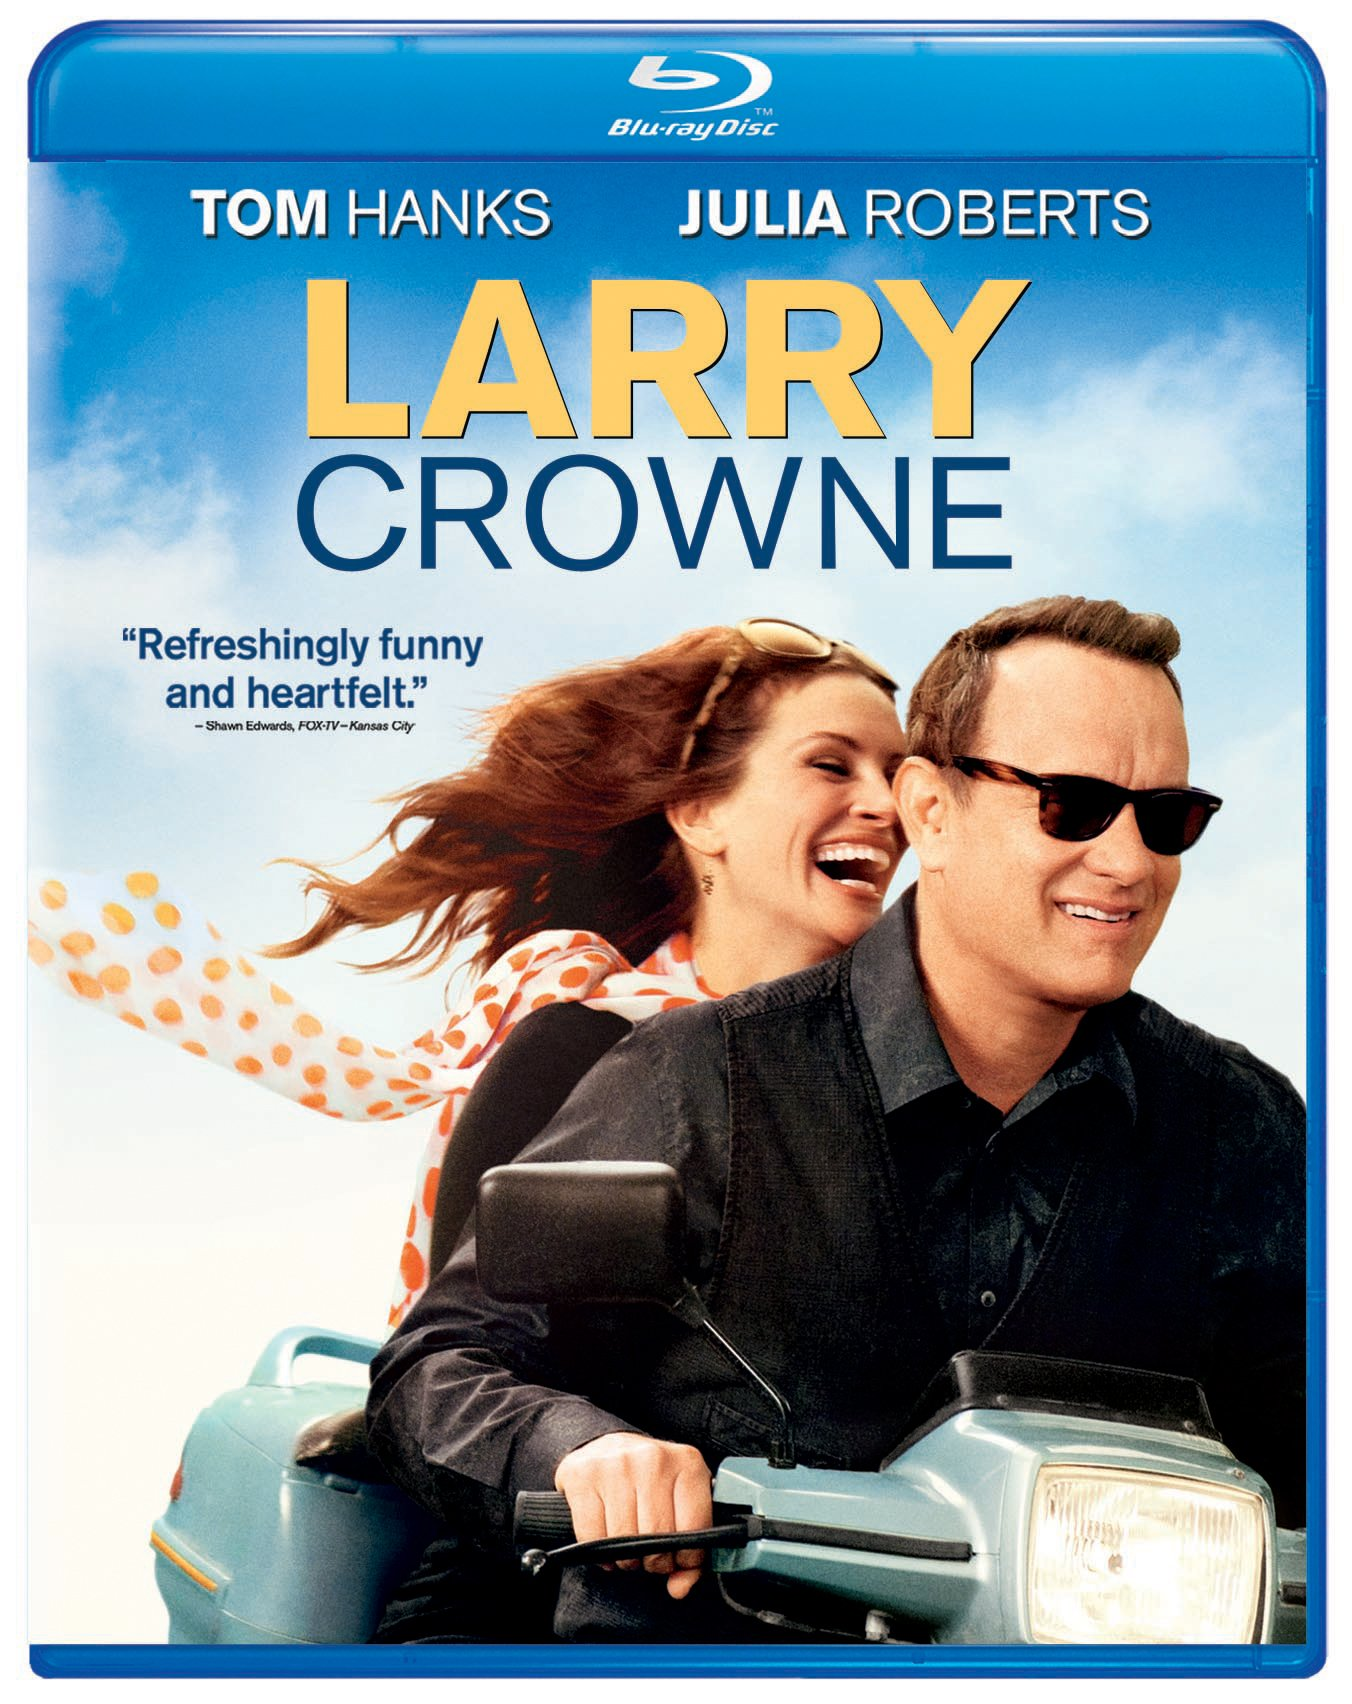 Blu-ray : Larry Crowne (Digital Theater System, AC-3, Digital Video Services, , Slipsleeve Packaging)